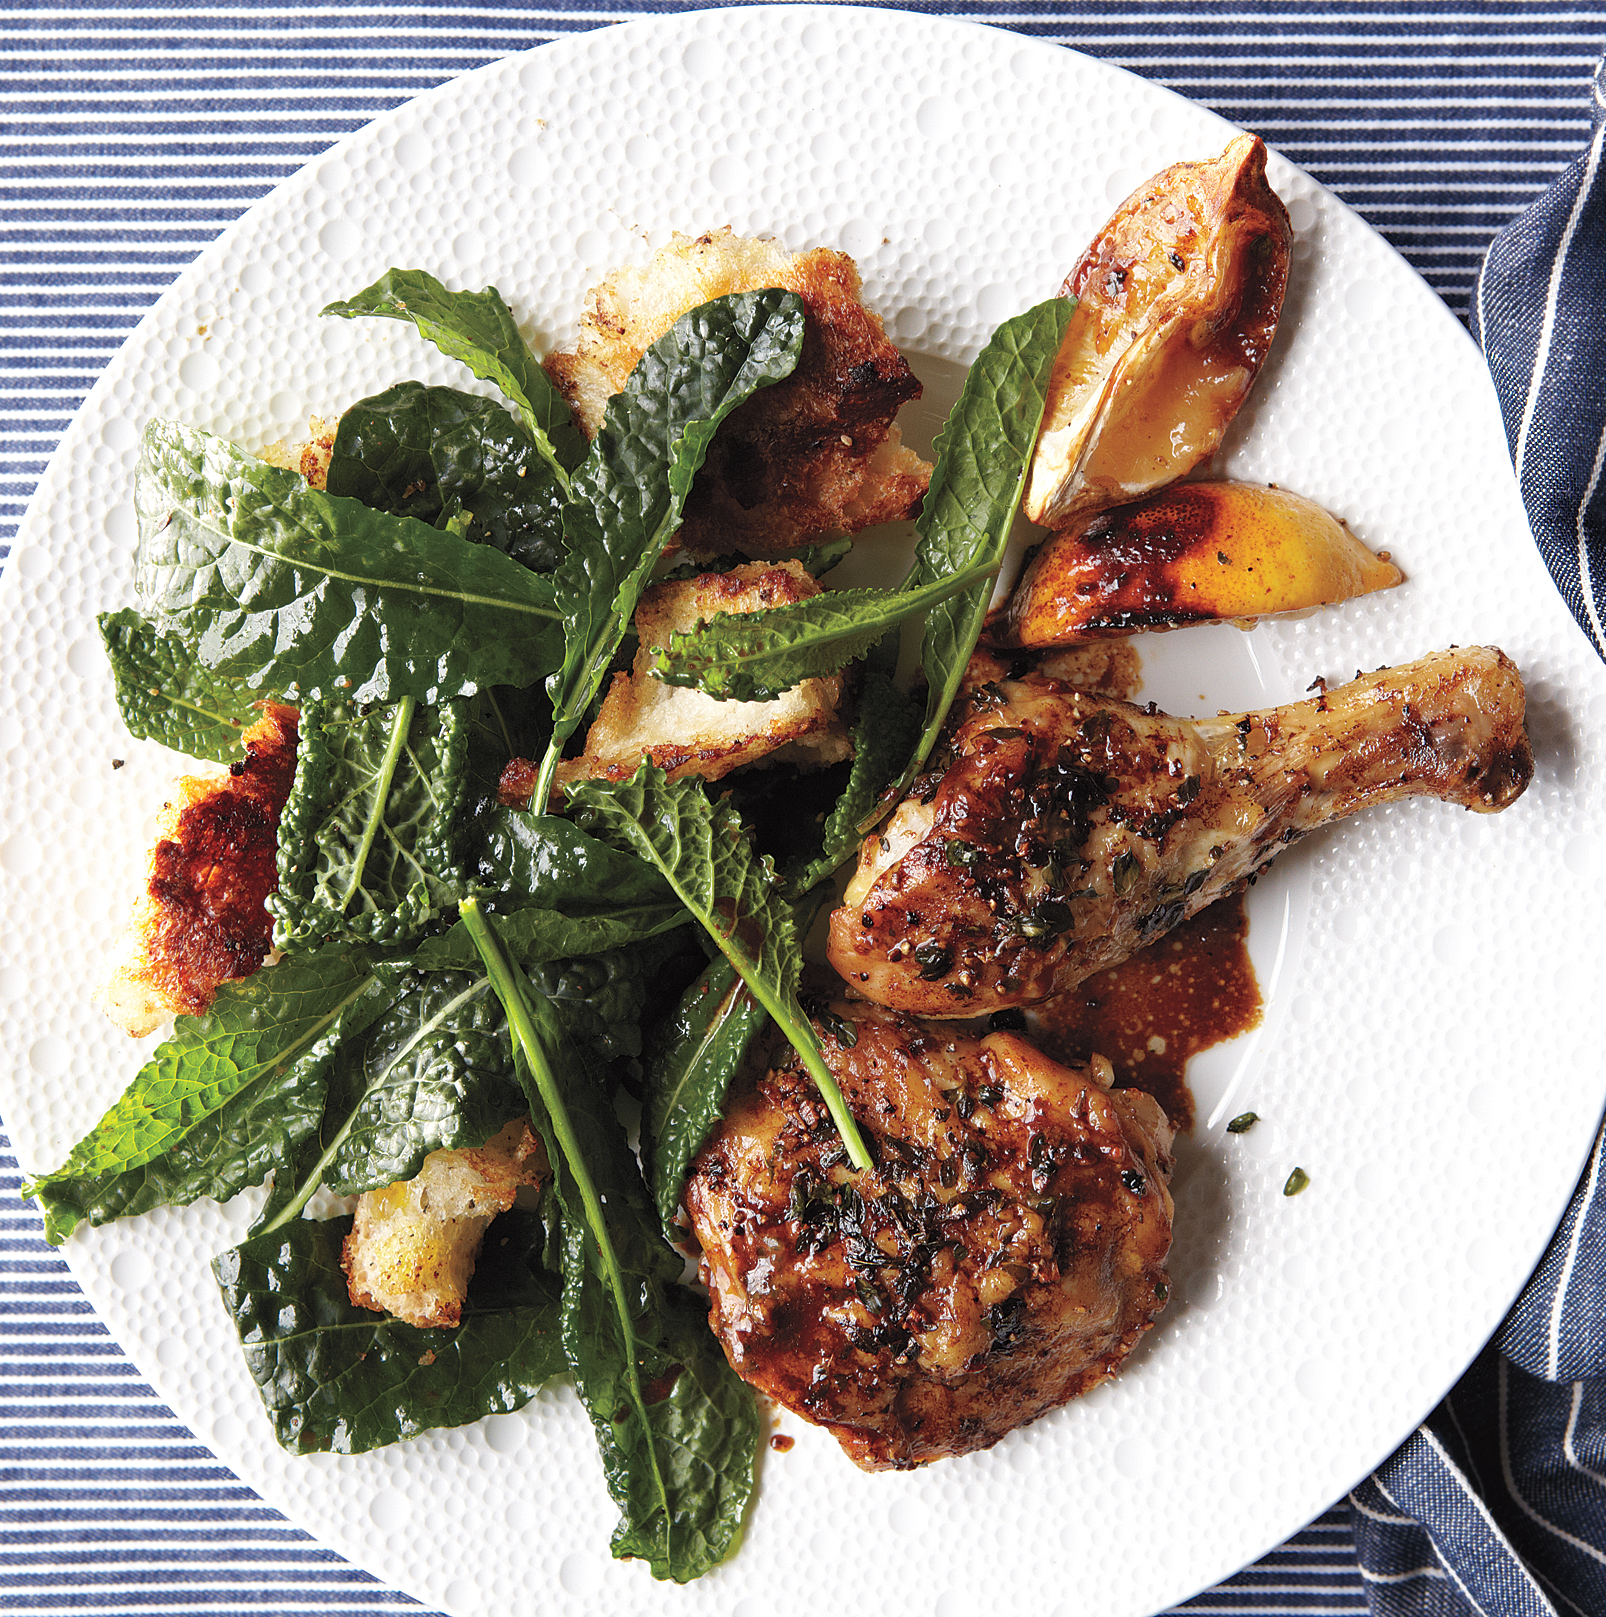 Herb-Crusted Chicken With Kale and Pan-Dripping Croutons, one of our healthy dinner ideas.